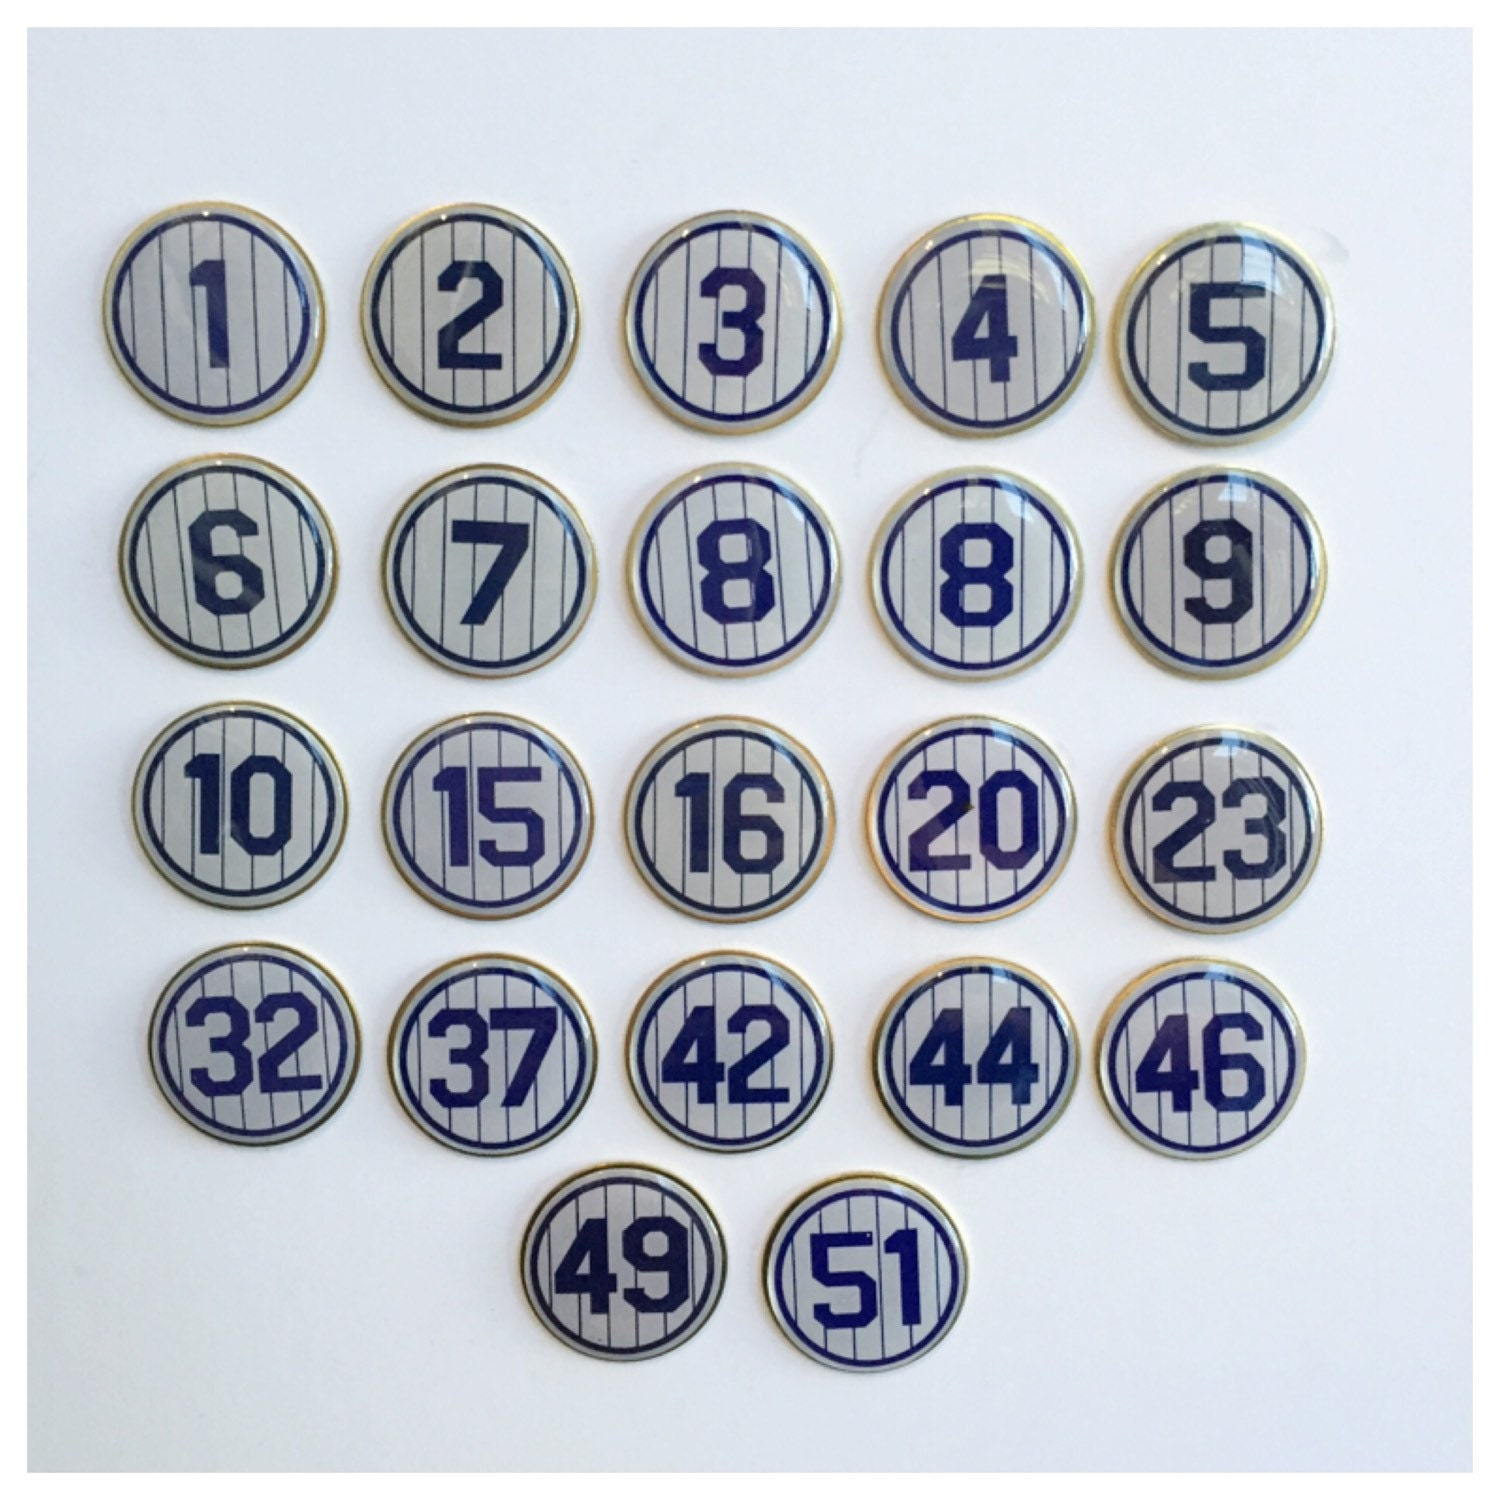 New York Yankees Retired Number Lapel Pins